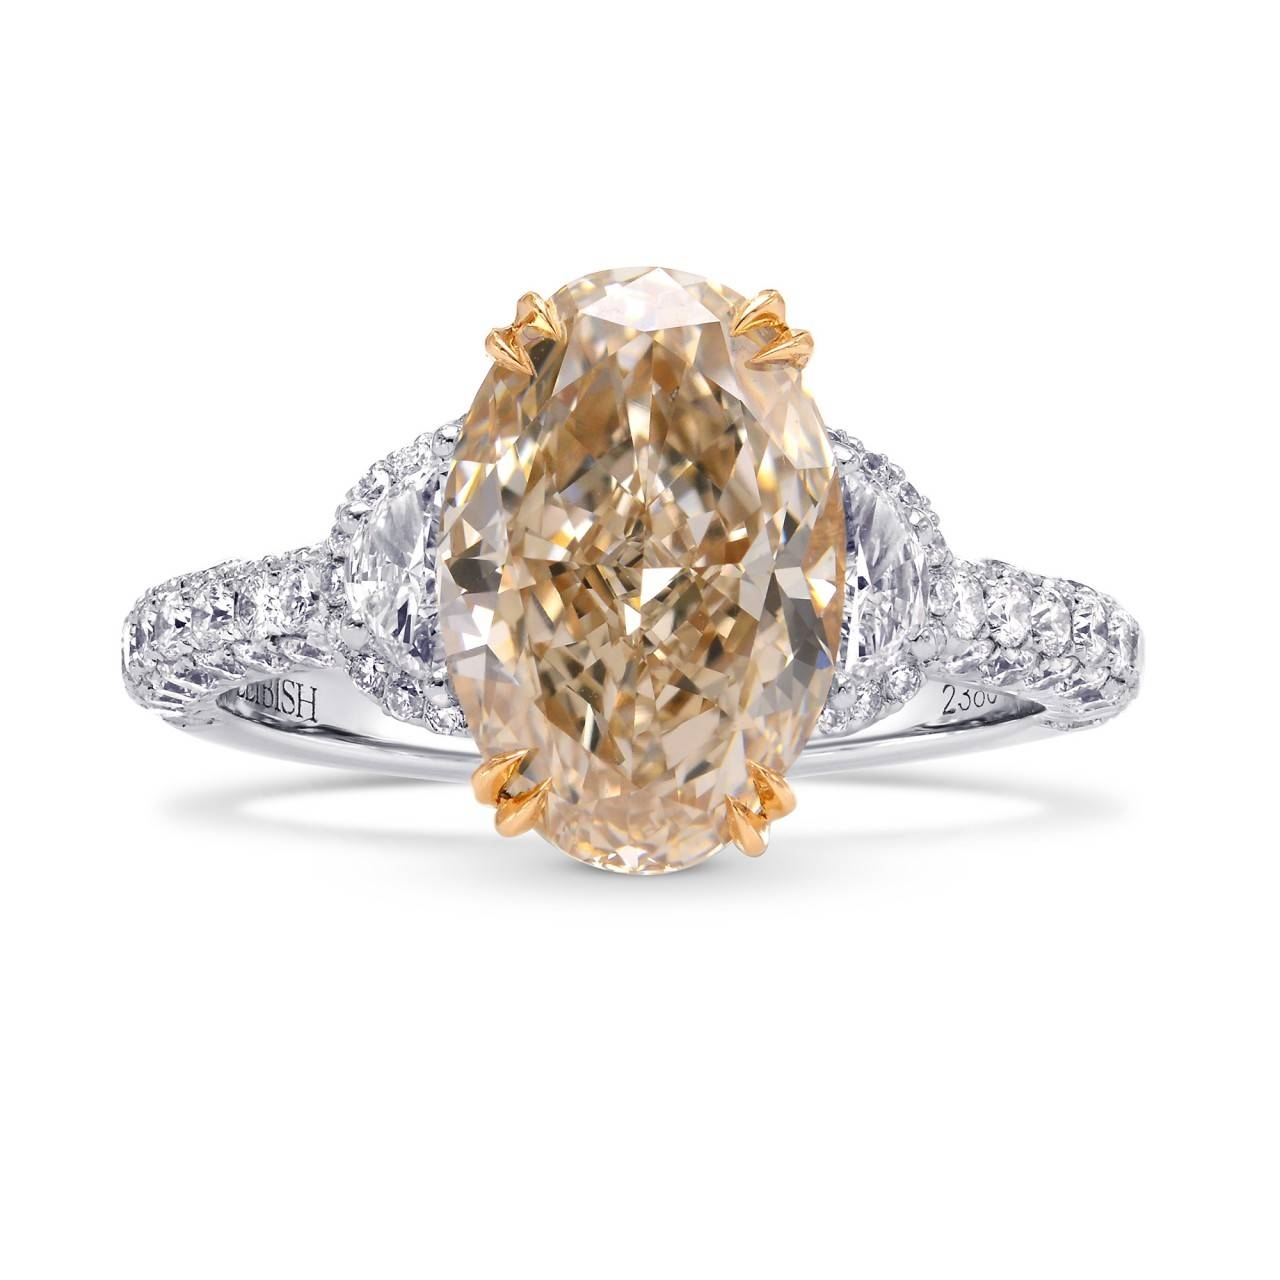 Brown & Champagne Diamond Engagement Rings | Leibish Within Colorful Diamond Engagement Rings (View 4 of 15)